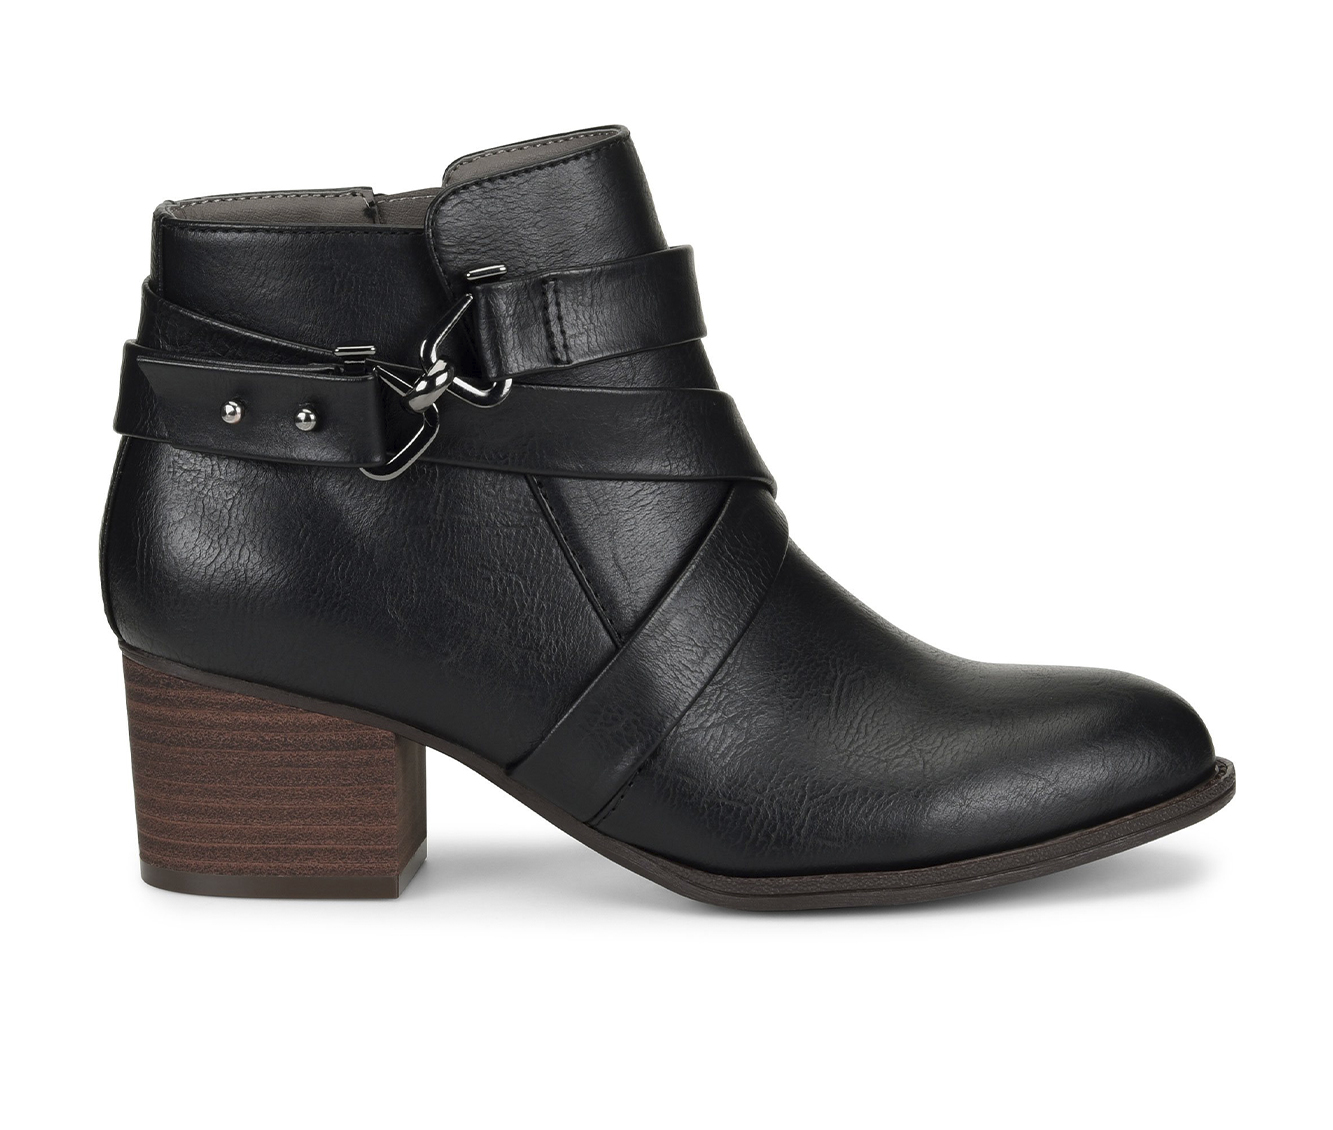 EuroSoft Witlee Women's Boot (Black Faux Leather)